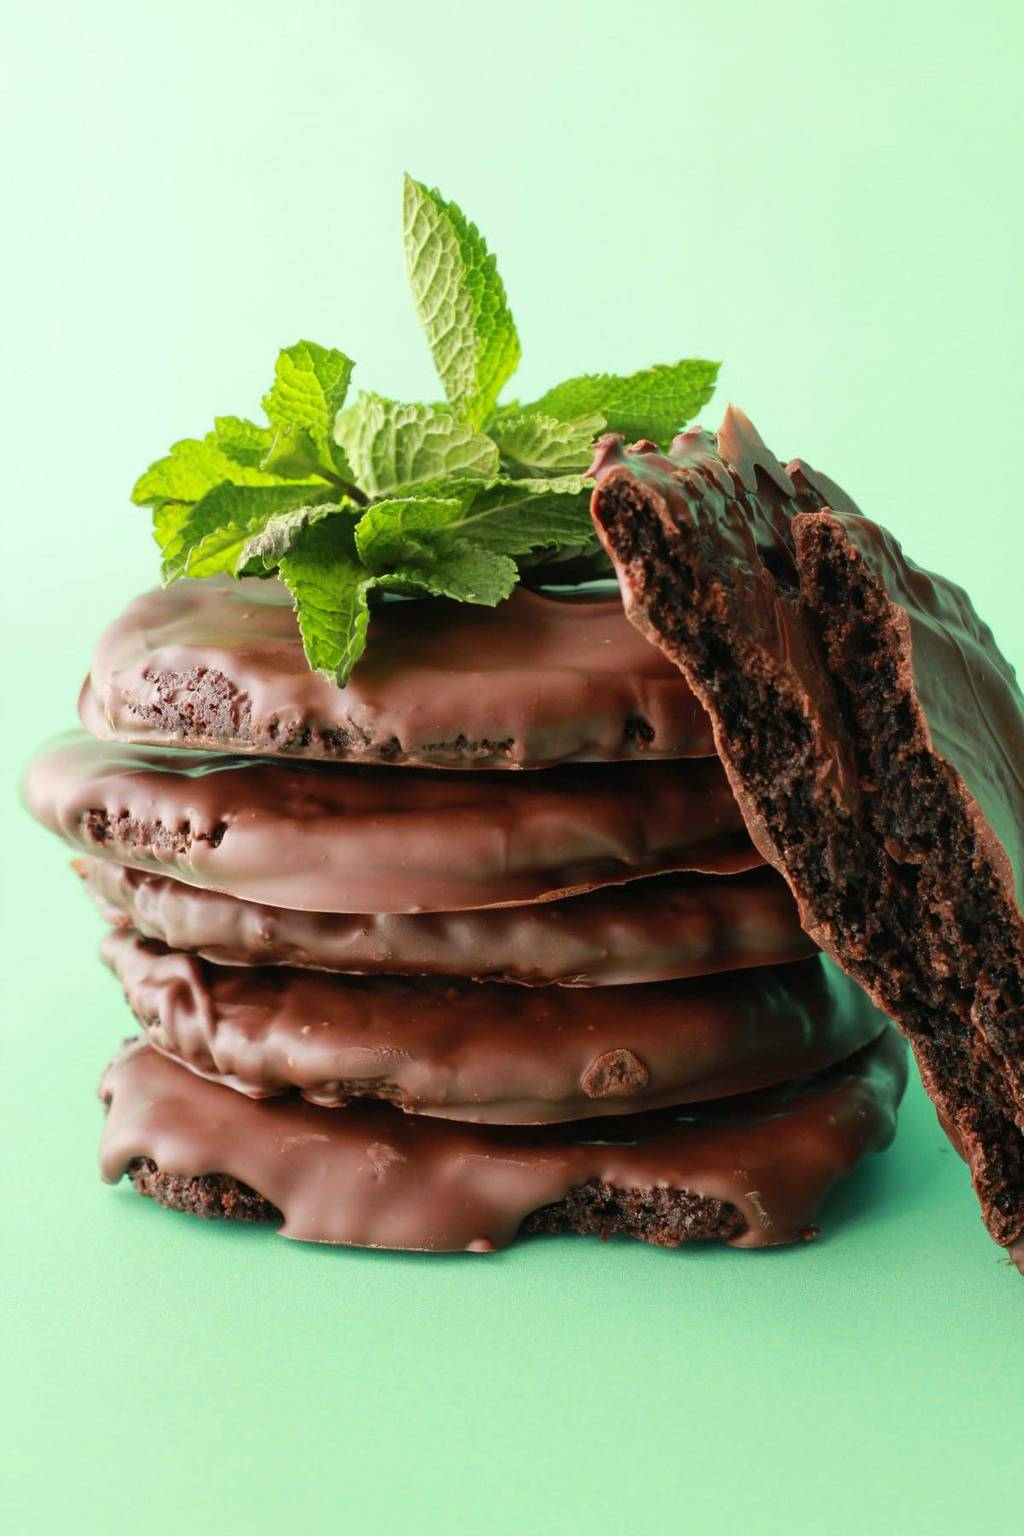 Vegan thin mint cookies stacked up with fresh mint leaves against a green background.